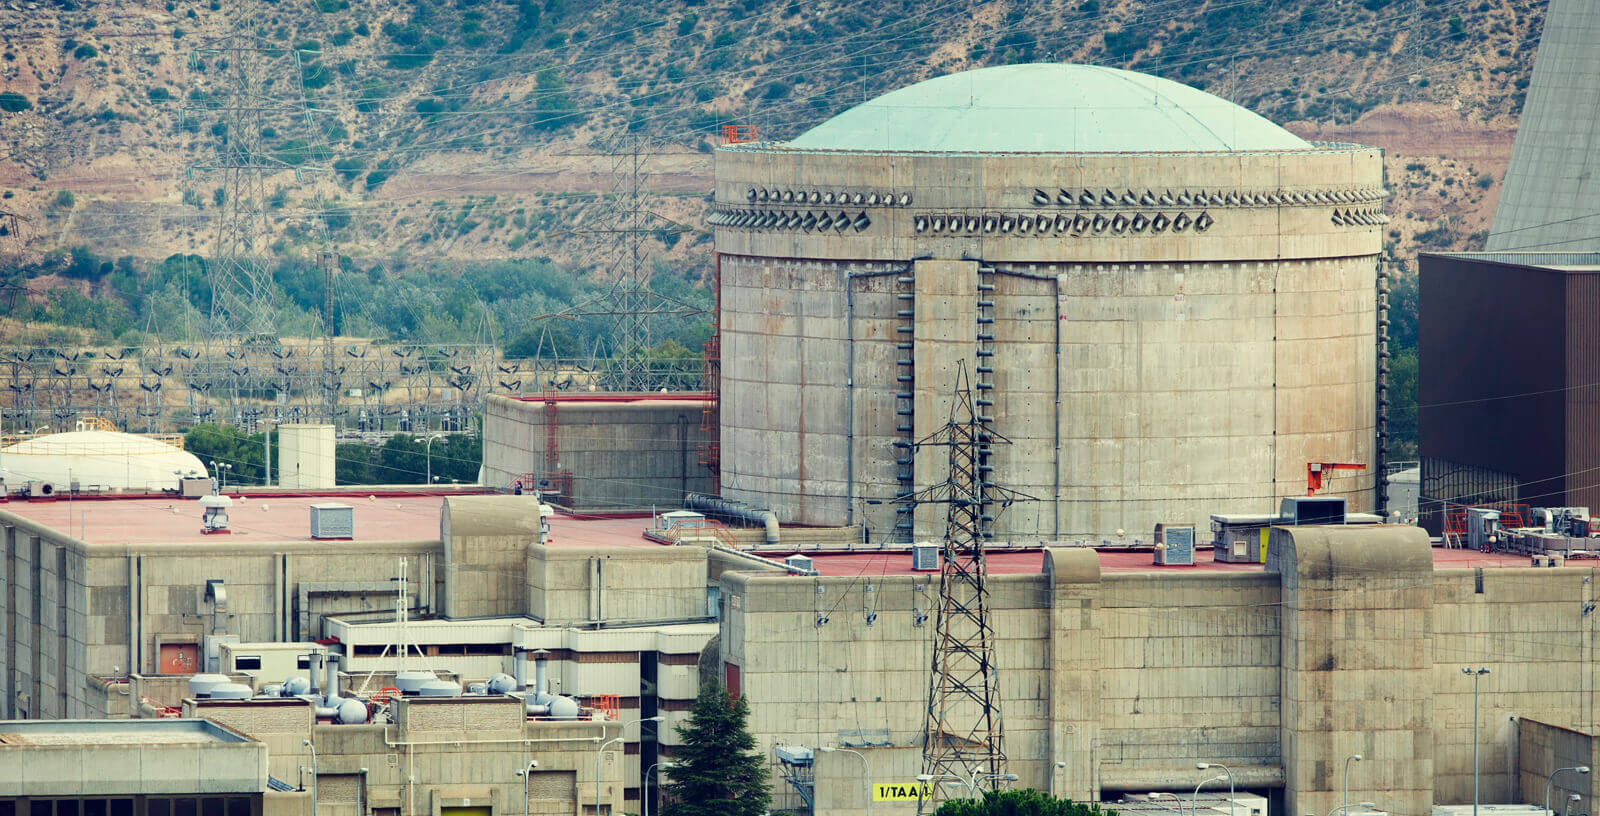 Idom_Nuclear_Services_ANAV_Design_Filtered_Containment_Venting_System_Asc__Vandell_s_II_nuclear_power_plants_Alfonso_Calza